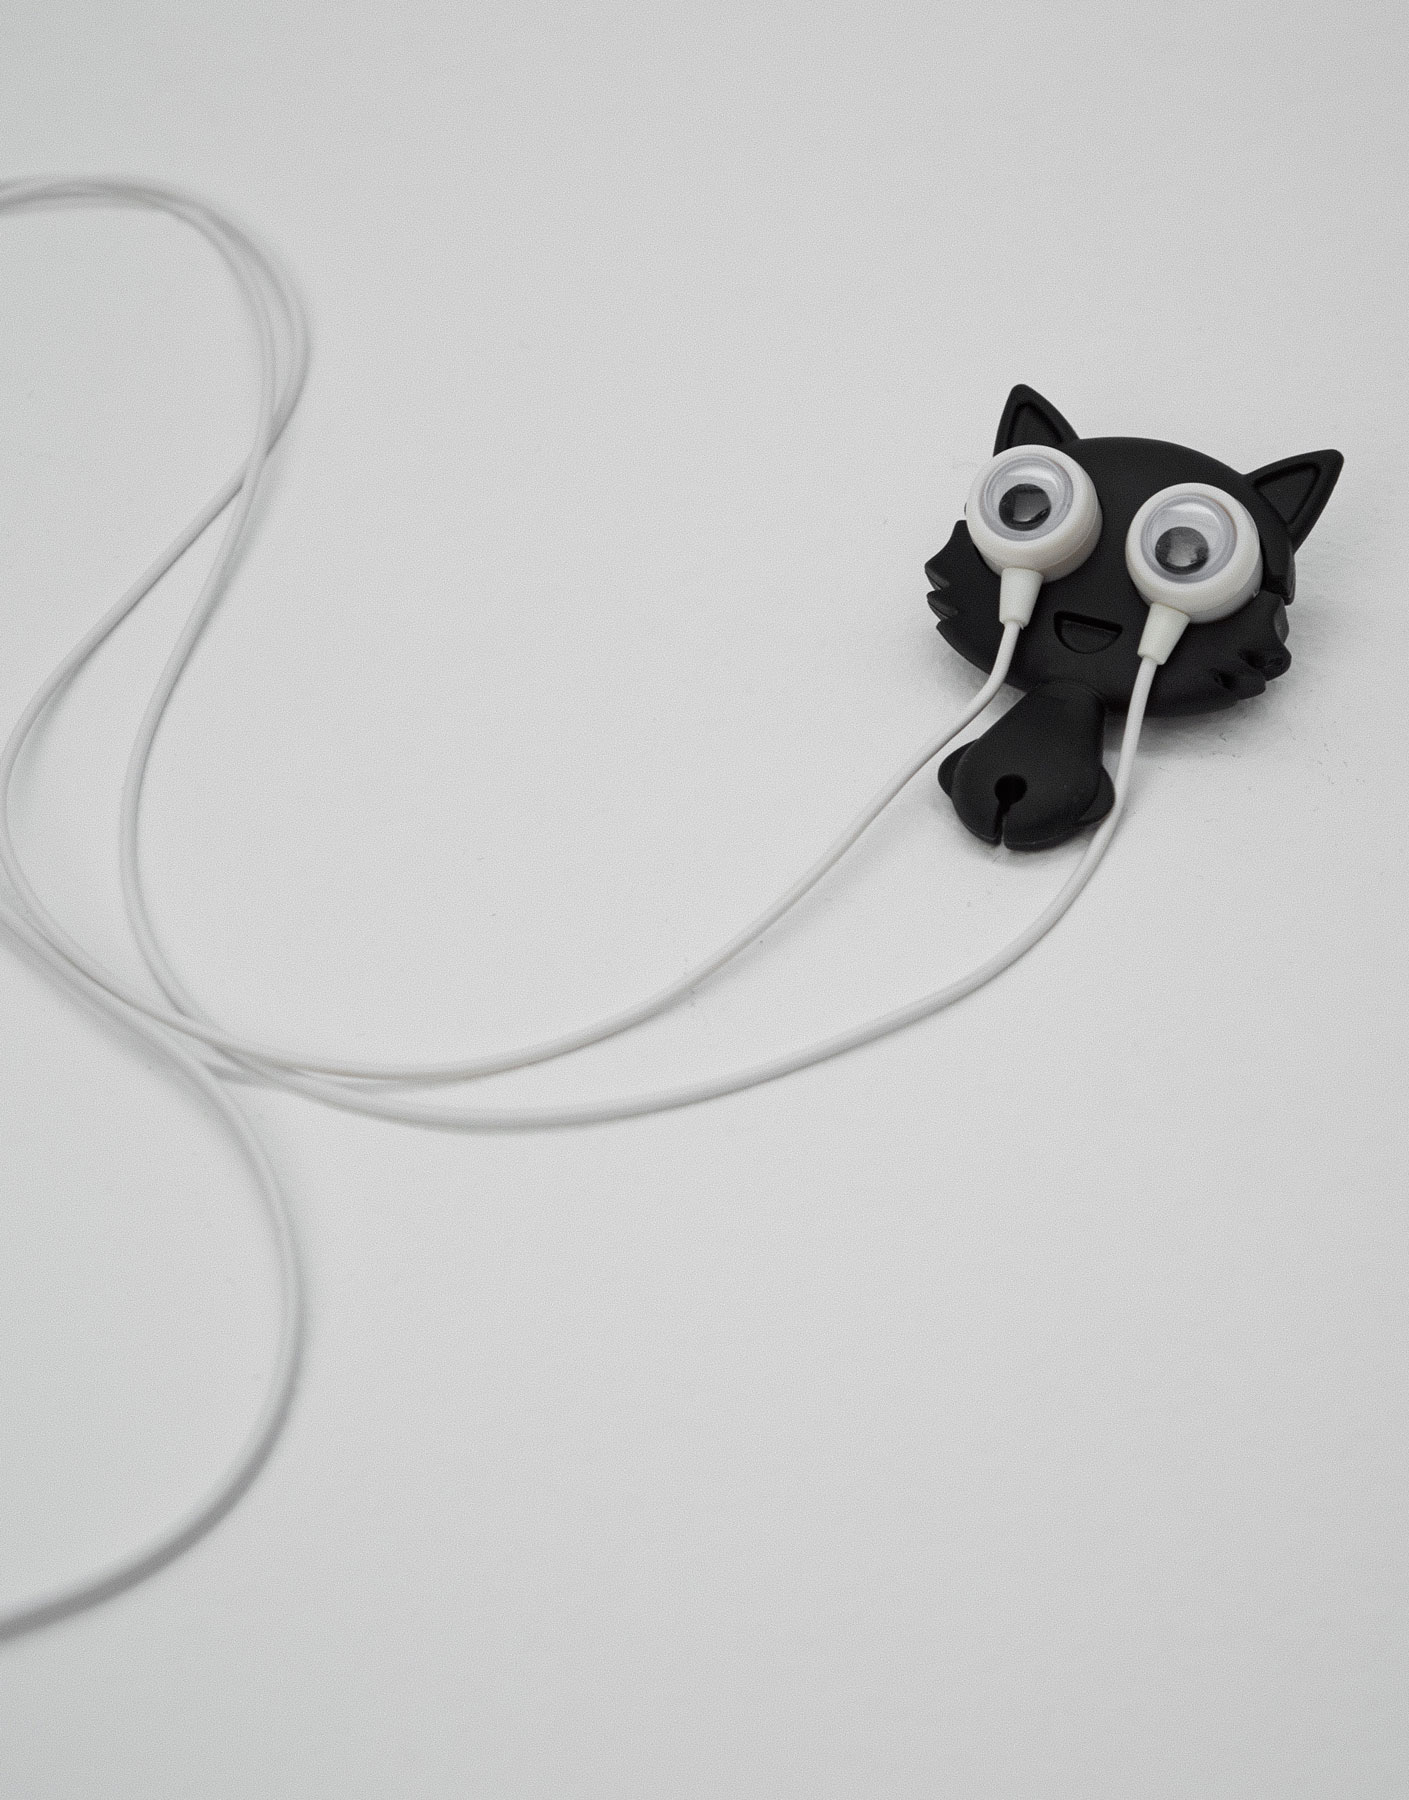 Cats earphones